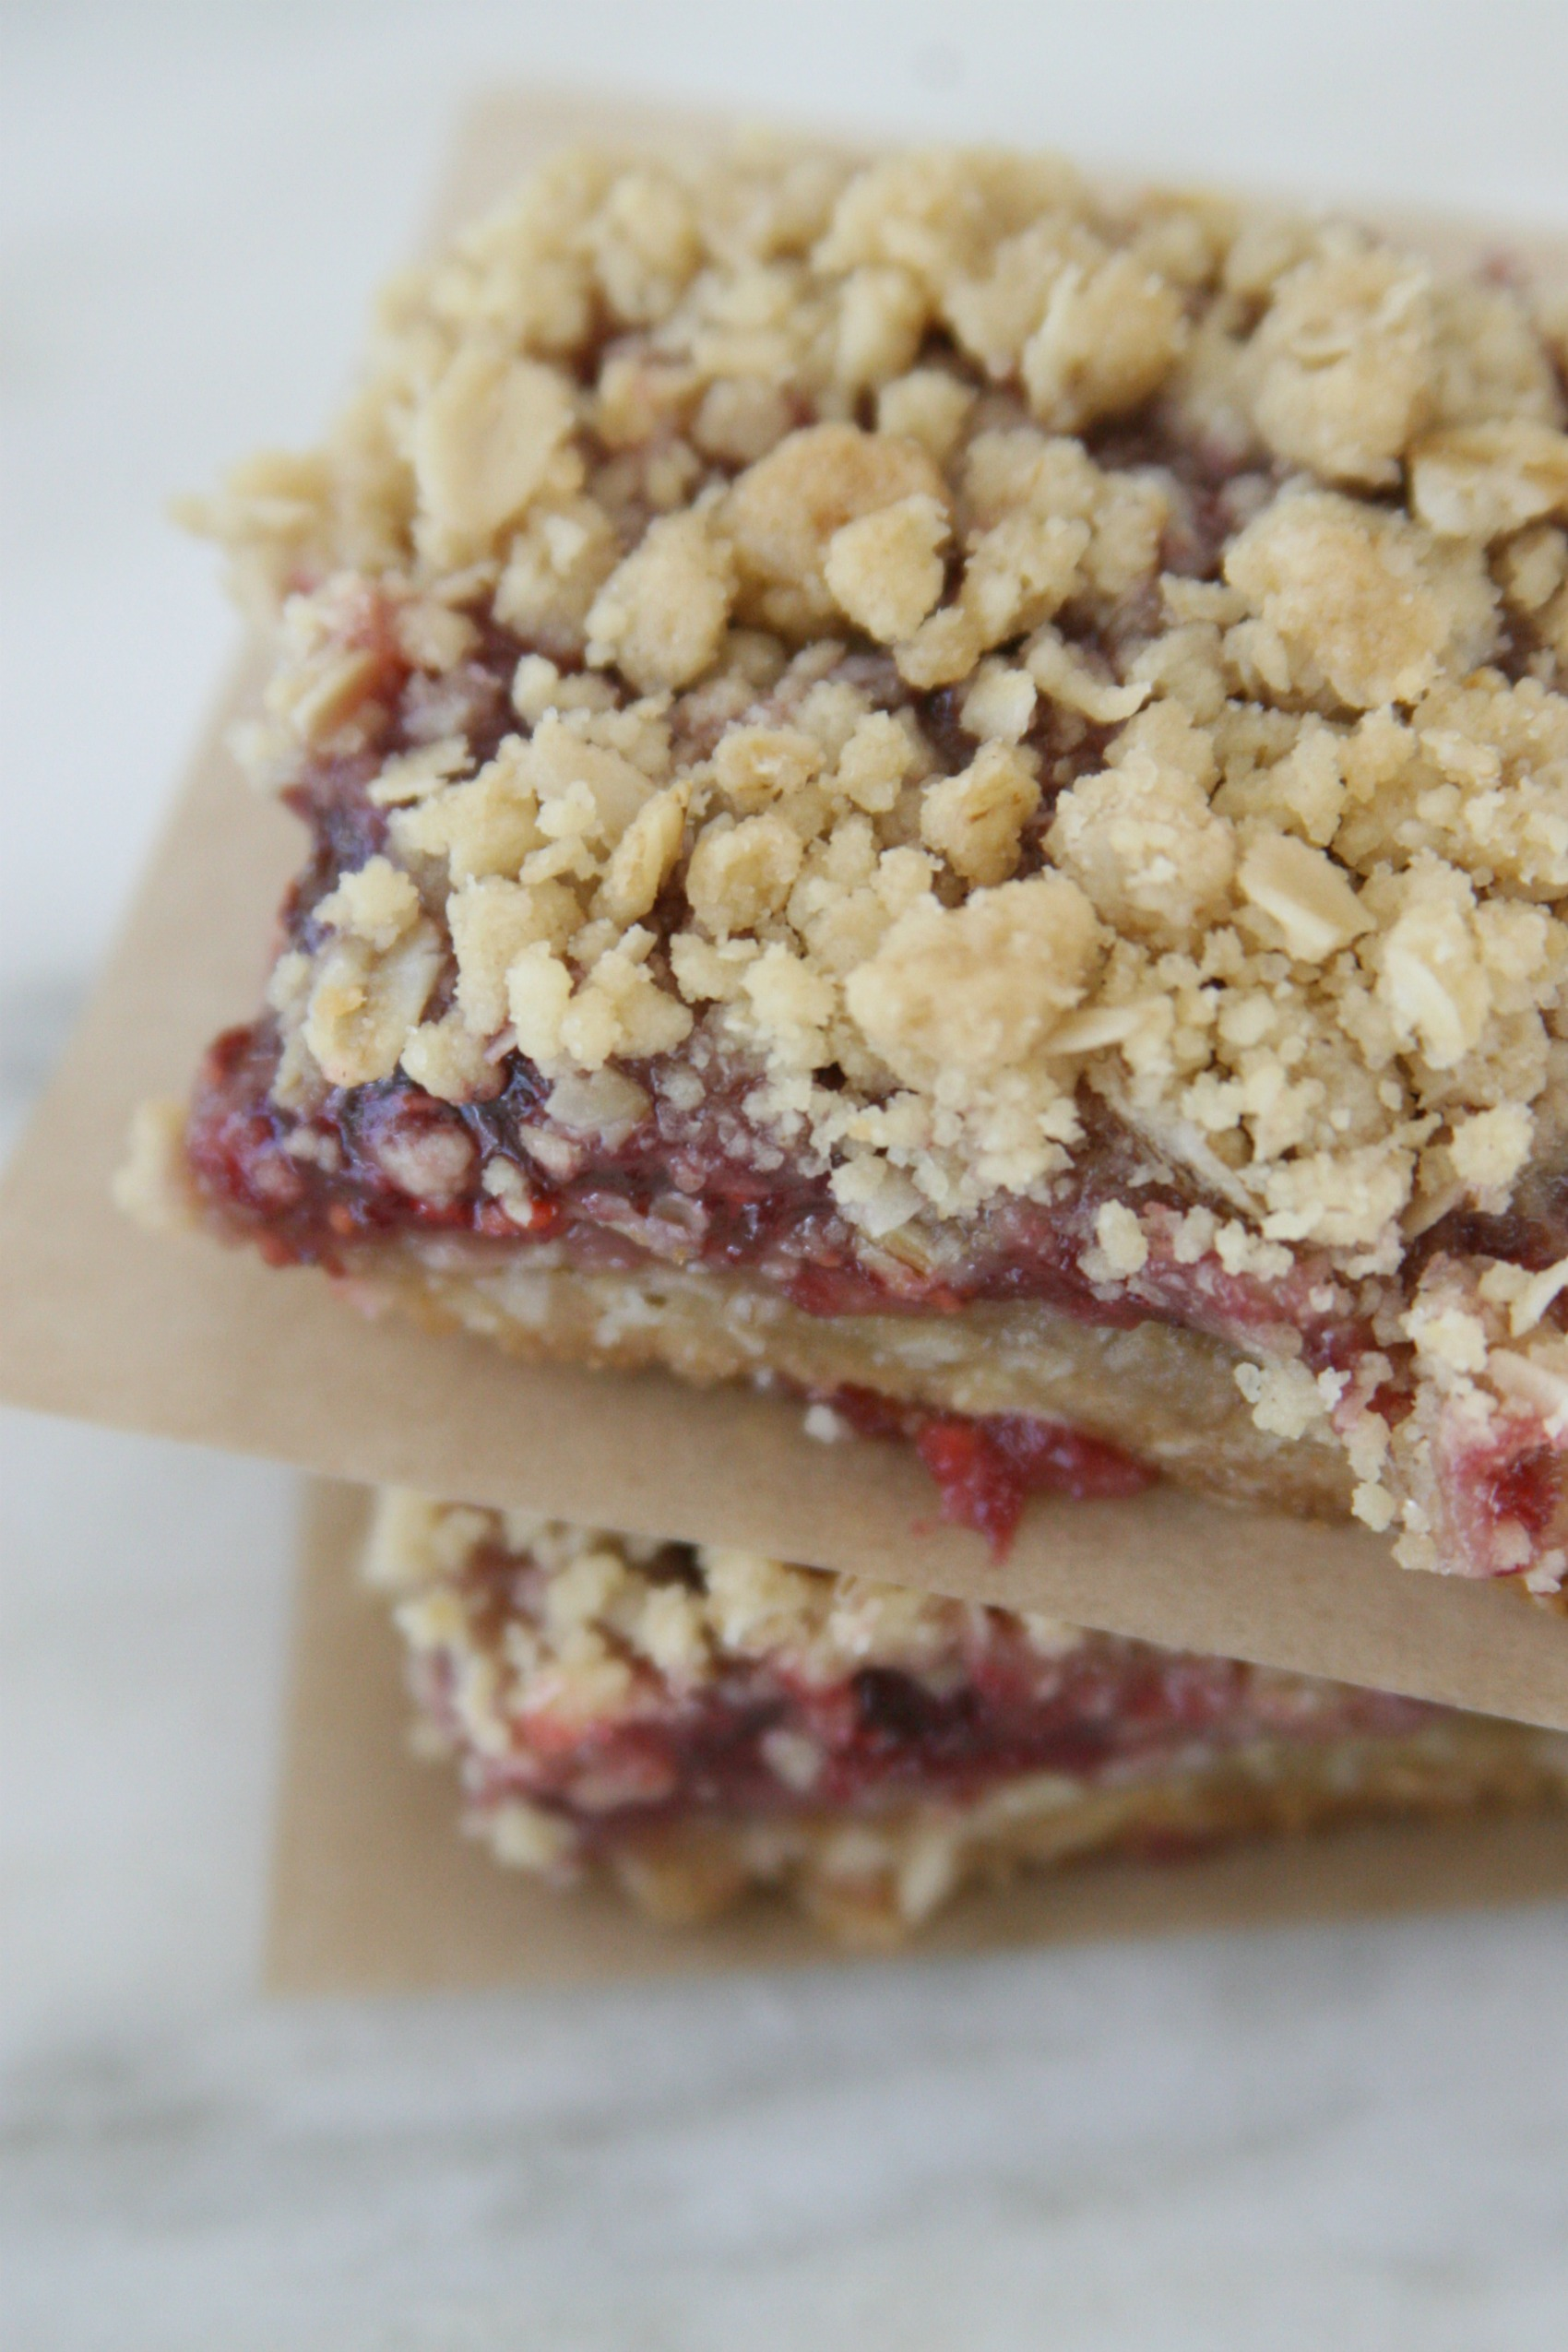 Raspberry oatmeal bars stacked on each other with brown parchment paper in between.